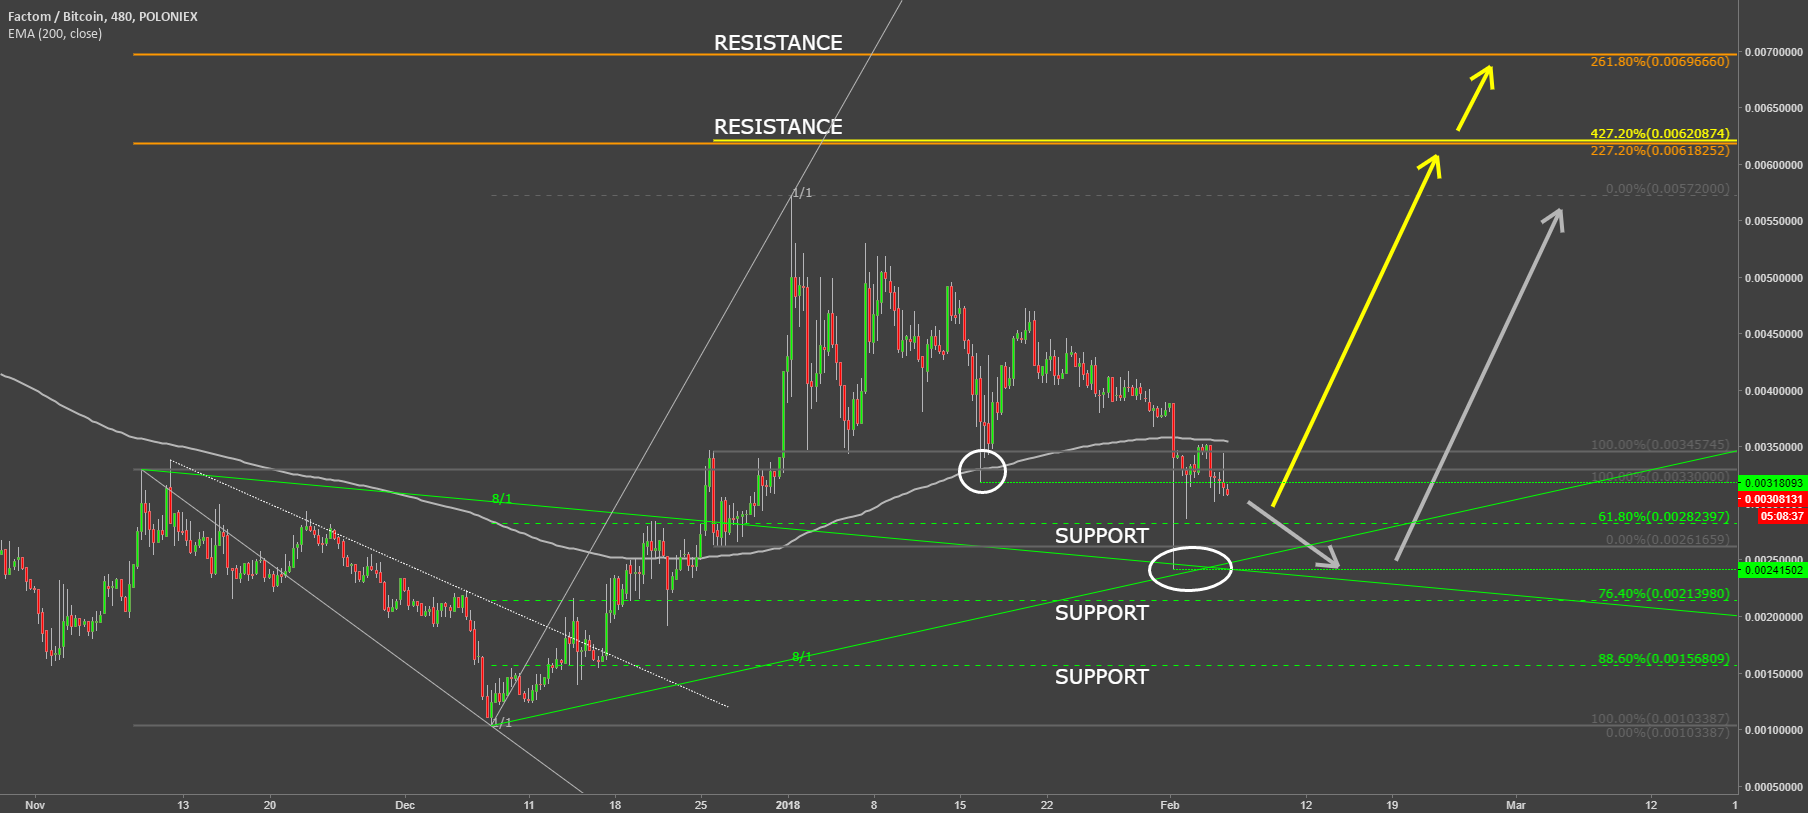 Factom - Support Levels To Watch